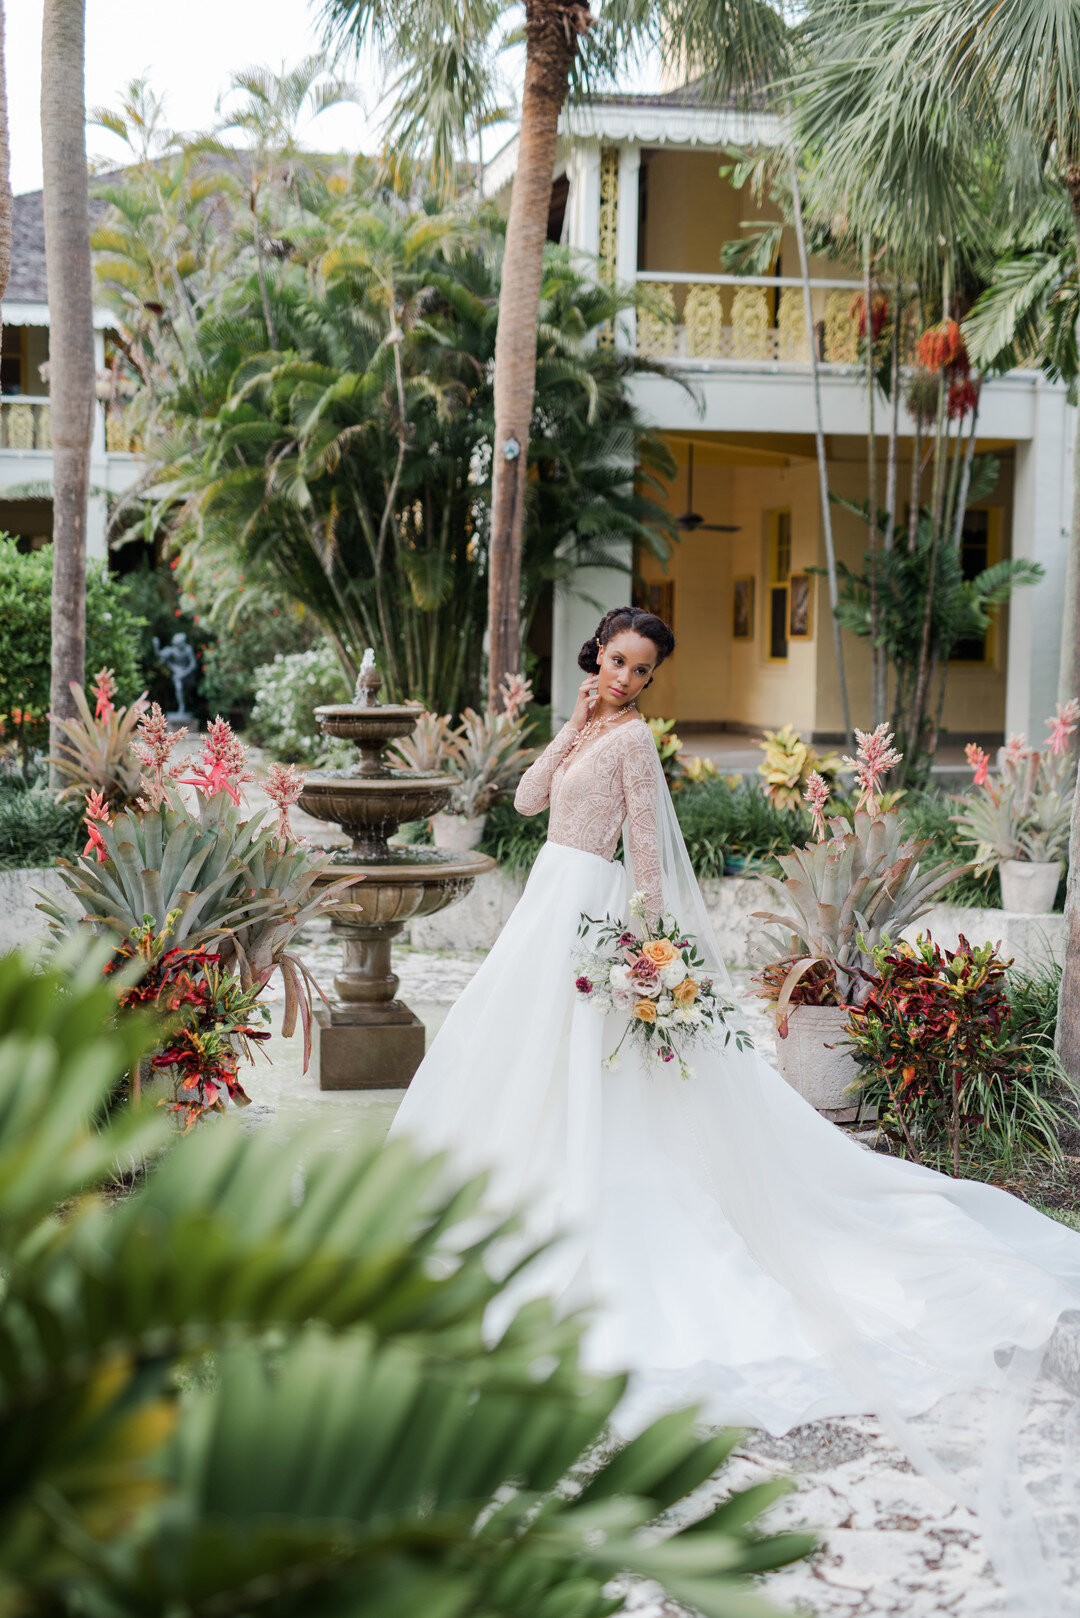 Vintage Southern Charm at Historic Bonnet House  & Gardens_Suzanne Lytle Photography_FortLauderdaleStylized262_big.JPG